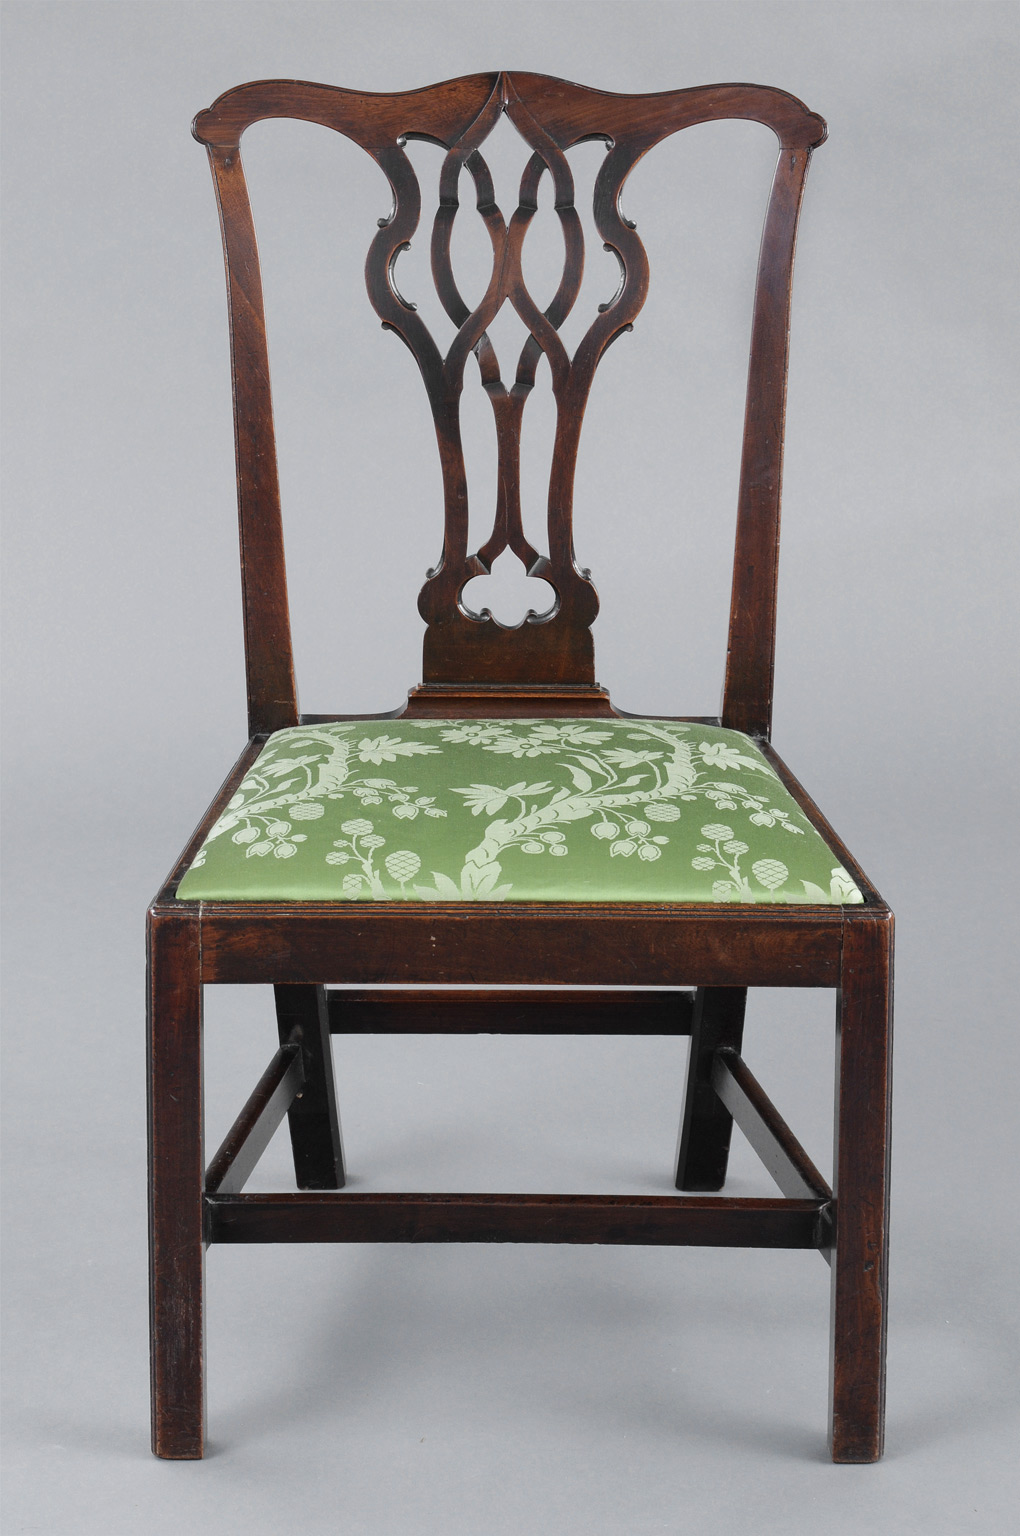 English Antique Chippendale Side Chair - English Chippendale Antique Side Chair Antique Mahogany Side Chairs